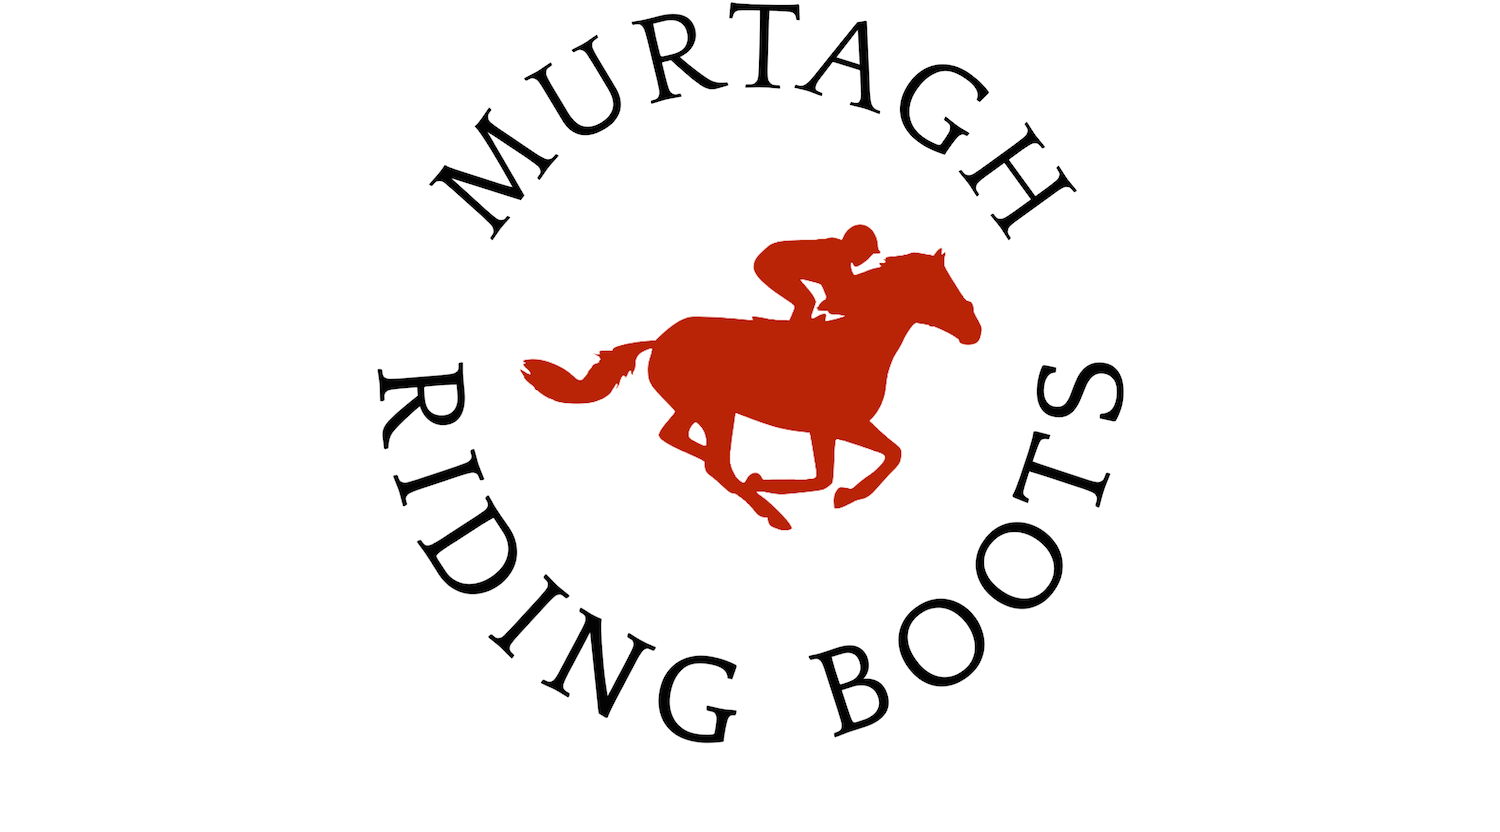 Murtagh Riding Boots